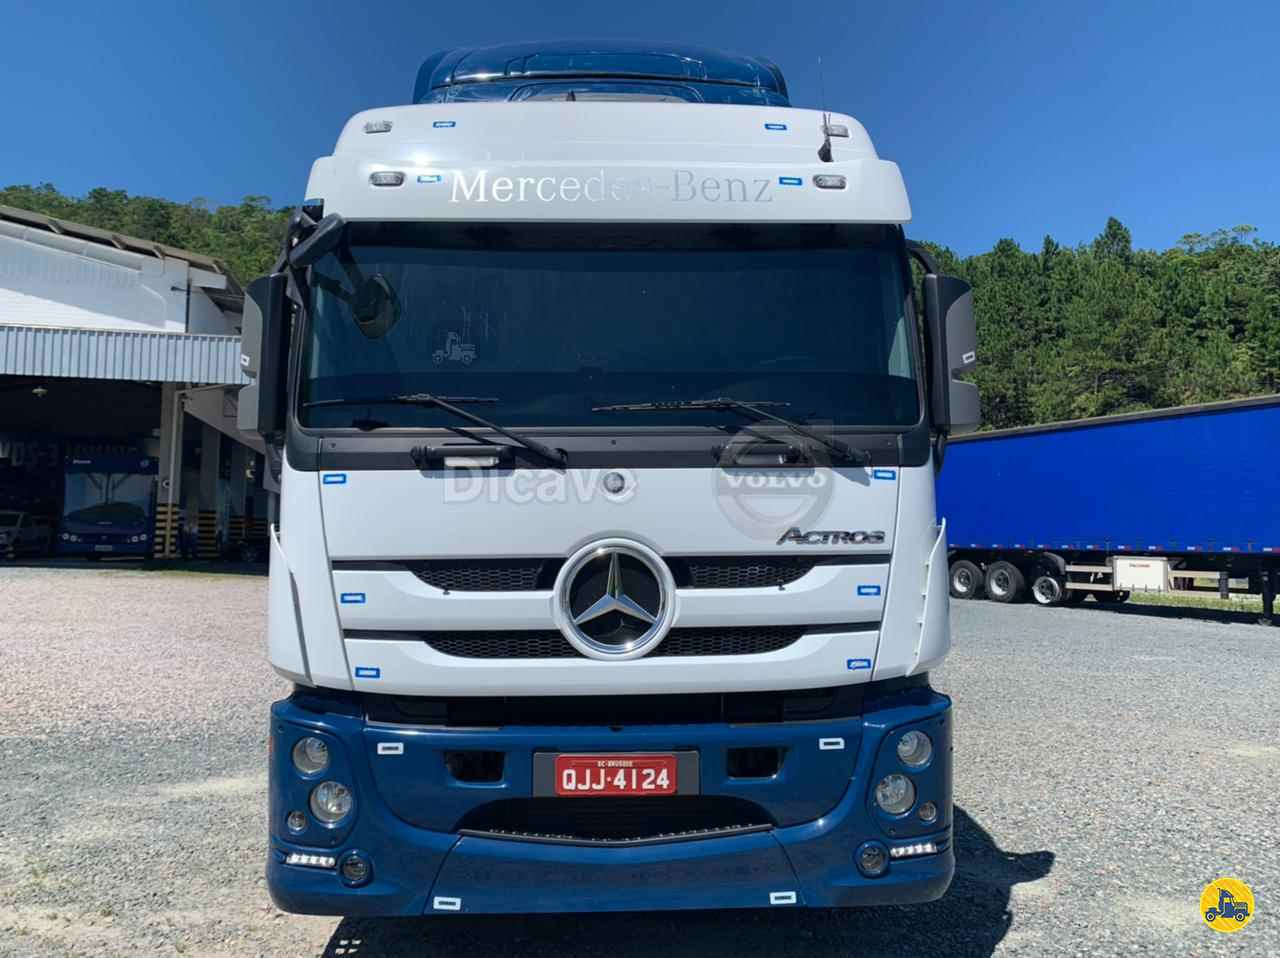 MERCEDES-BENZ MB 2546 177993km 2018/2019 Dicave Viking Center - Volvo